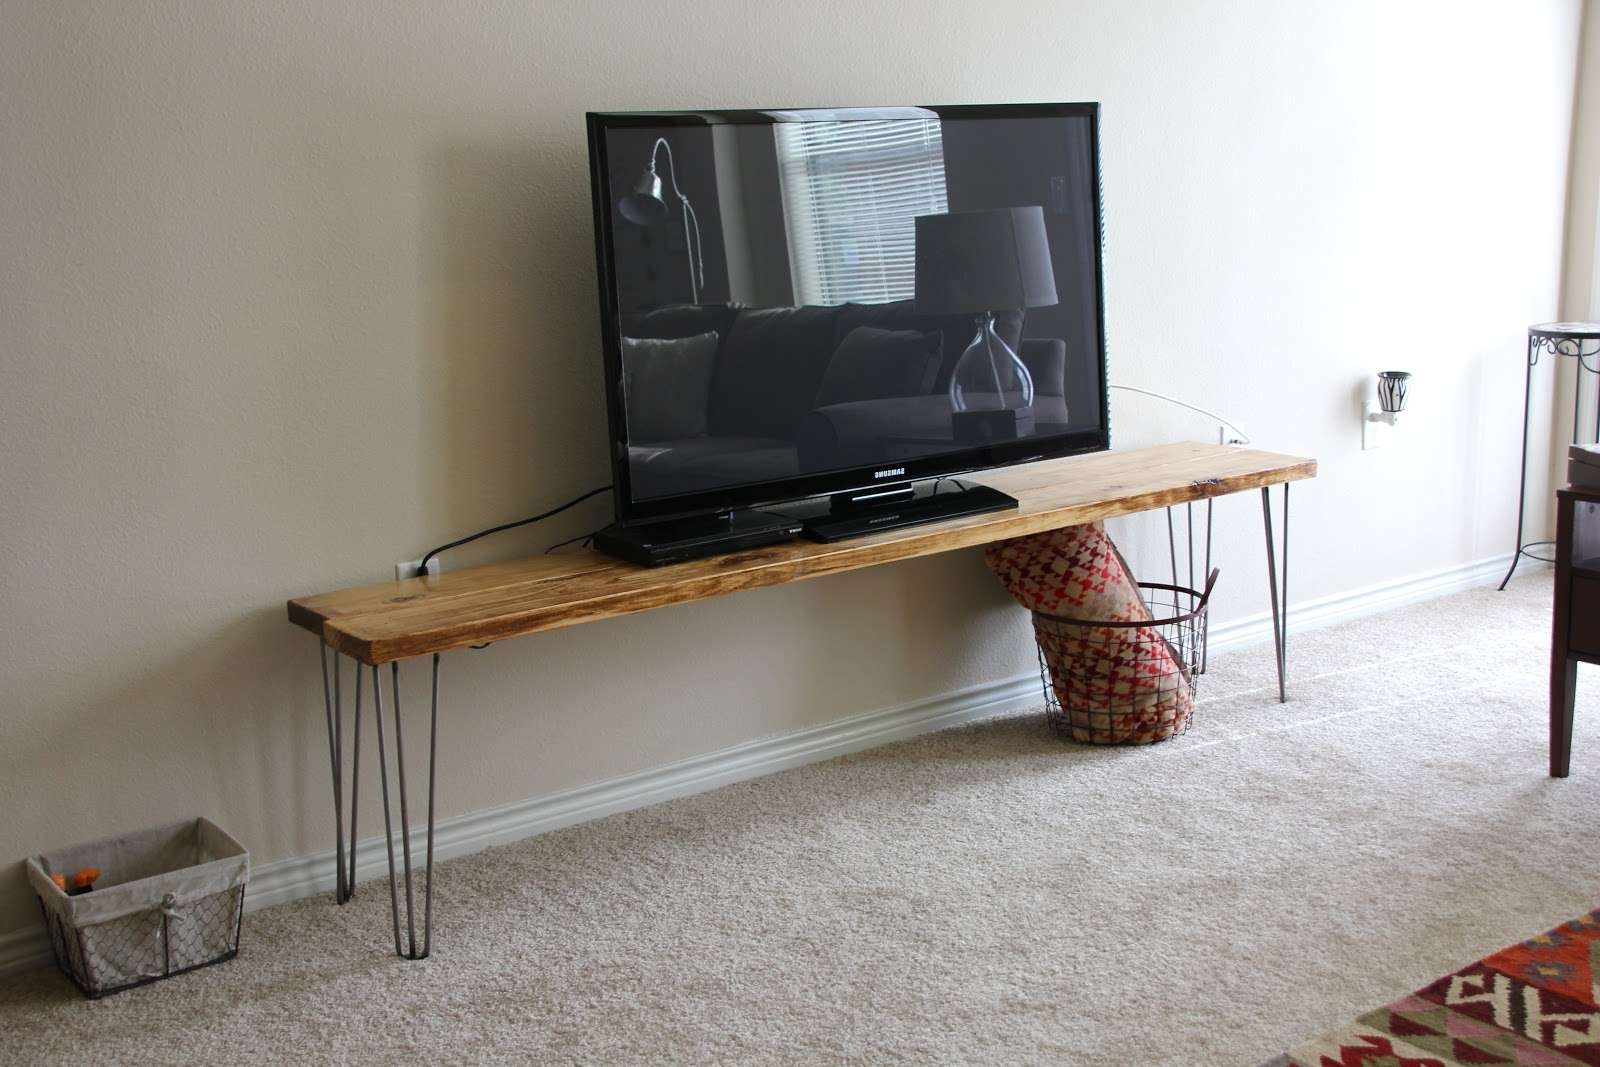 Cool Diy Narrow Wood Industrial Tv Stands With Hairpin Legs Ideas In Cool Tv Stands (View 5 of 15)